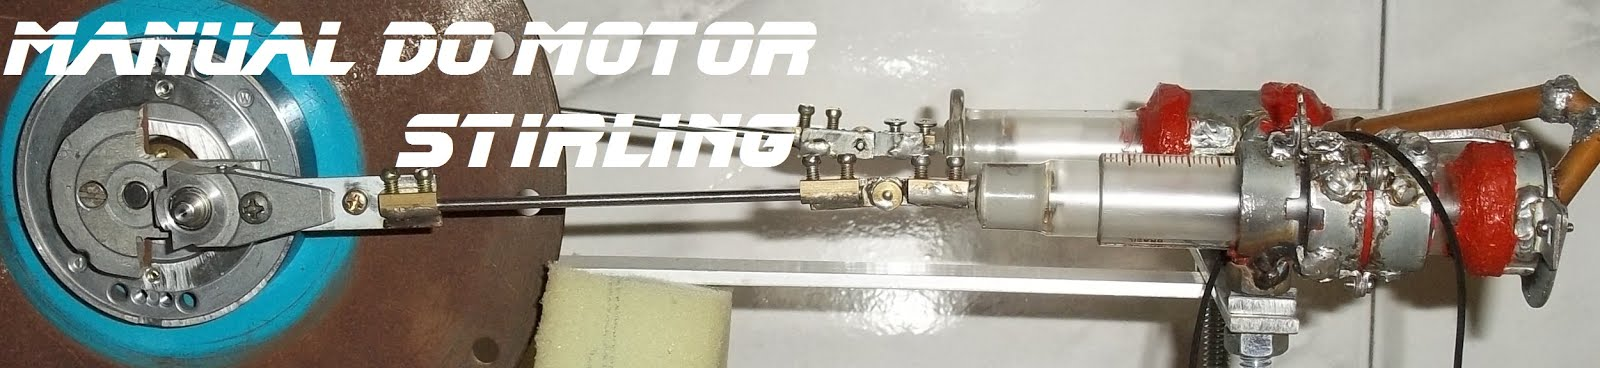 Manual do motor Stirling